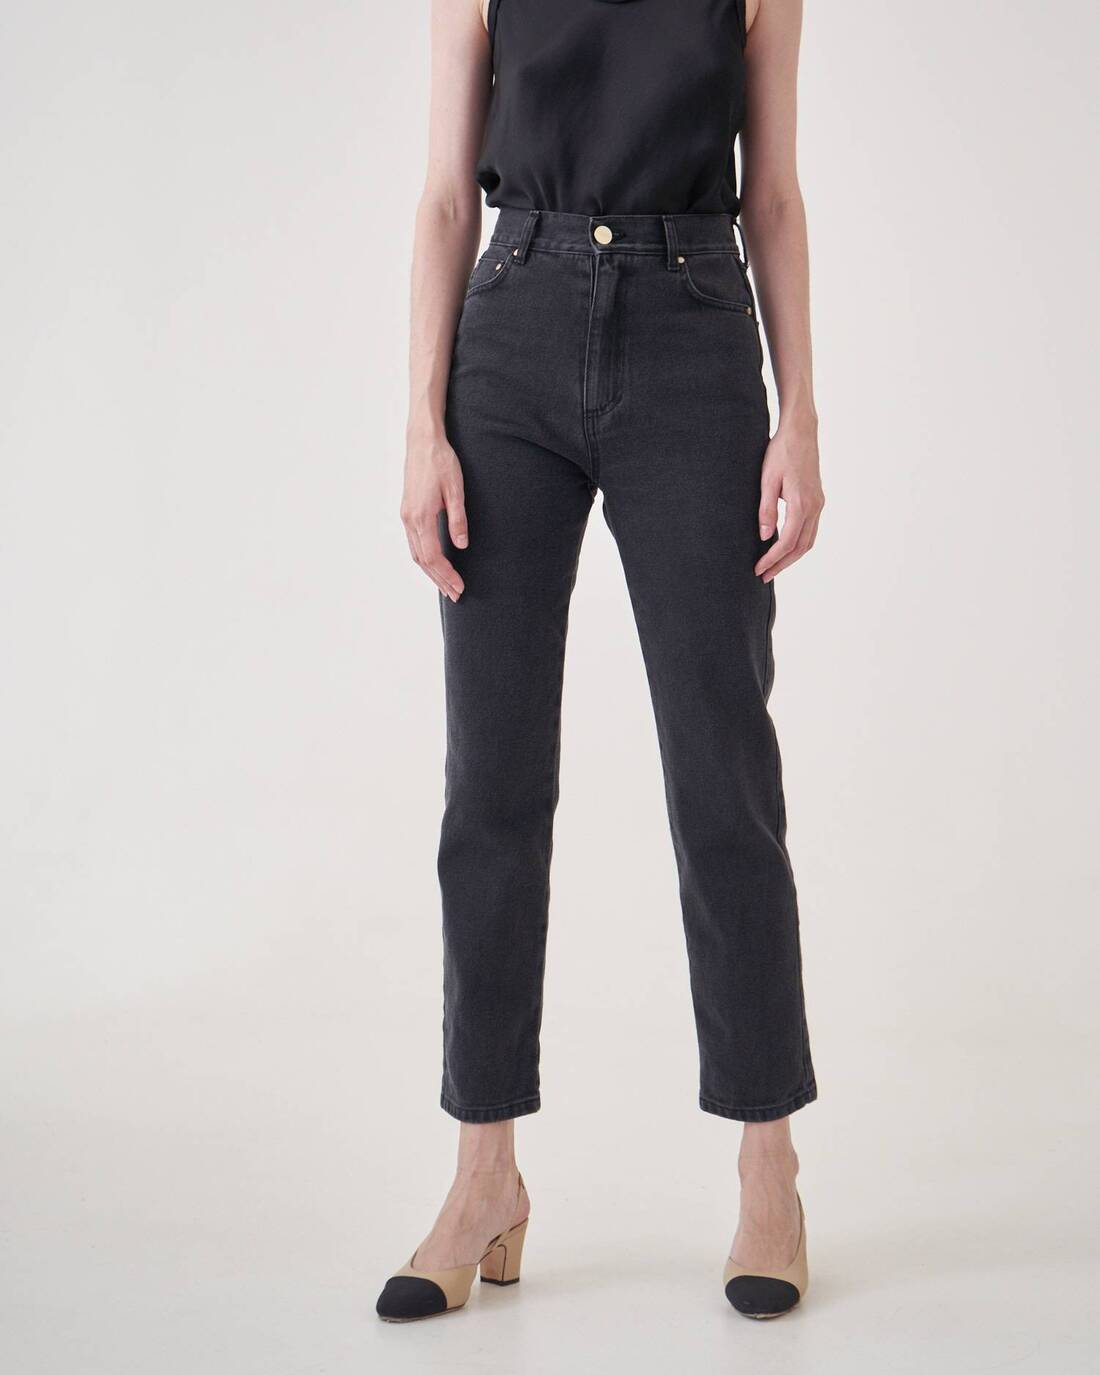 Cigarette jeans with decorative seams